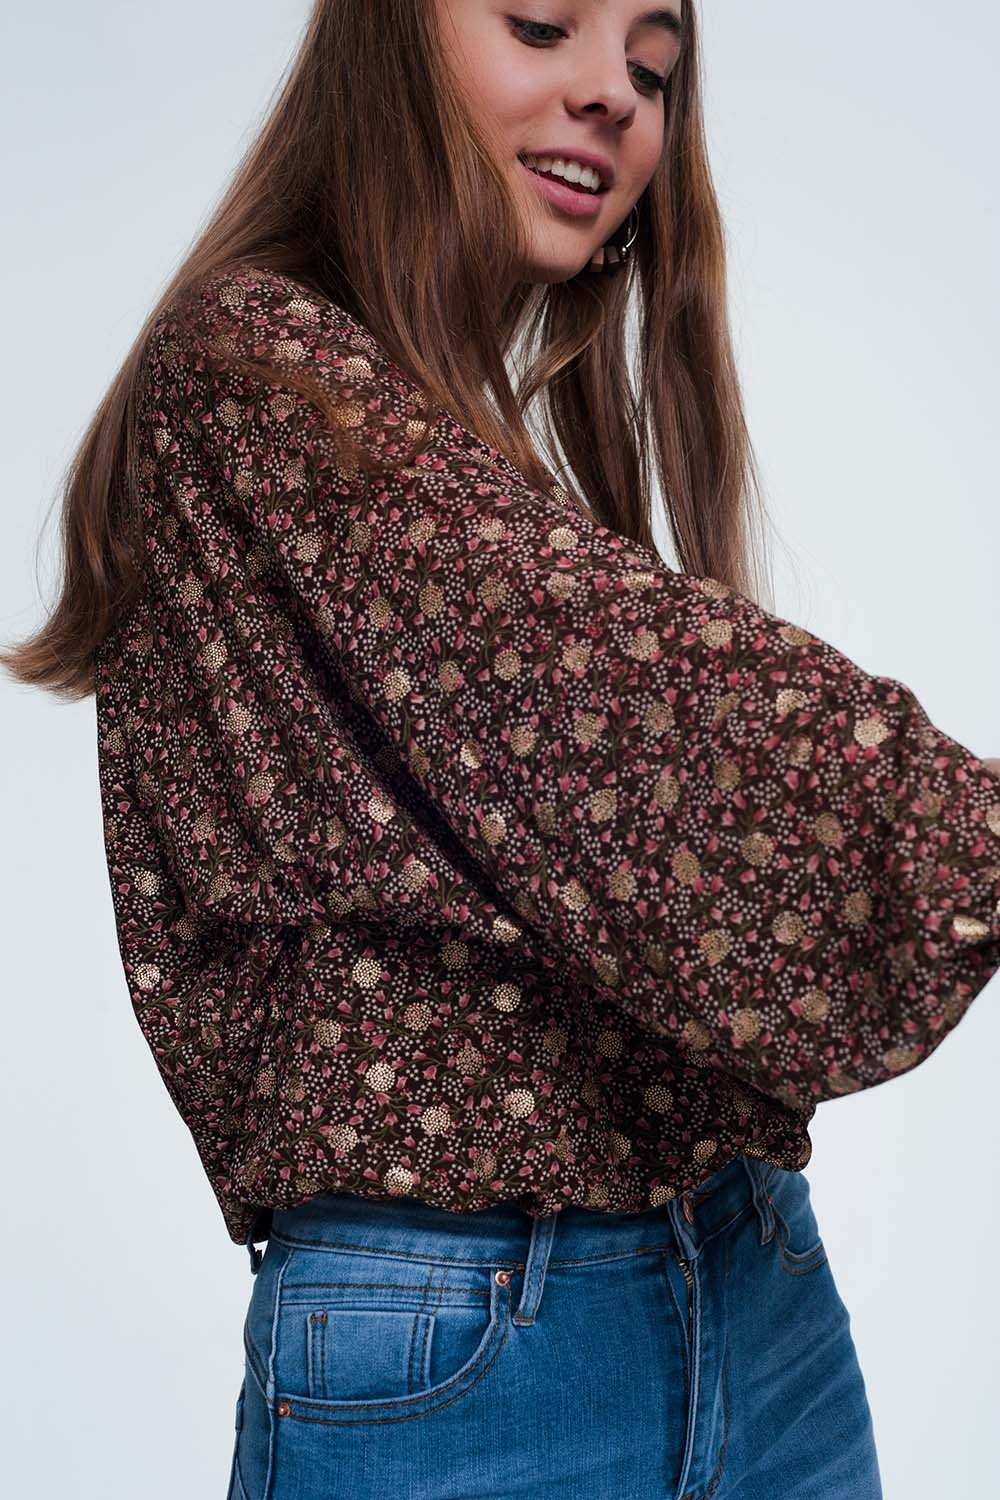 Blouse in Brown With Flower Print